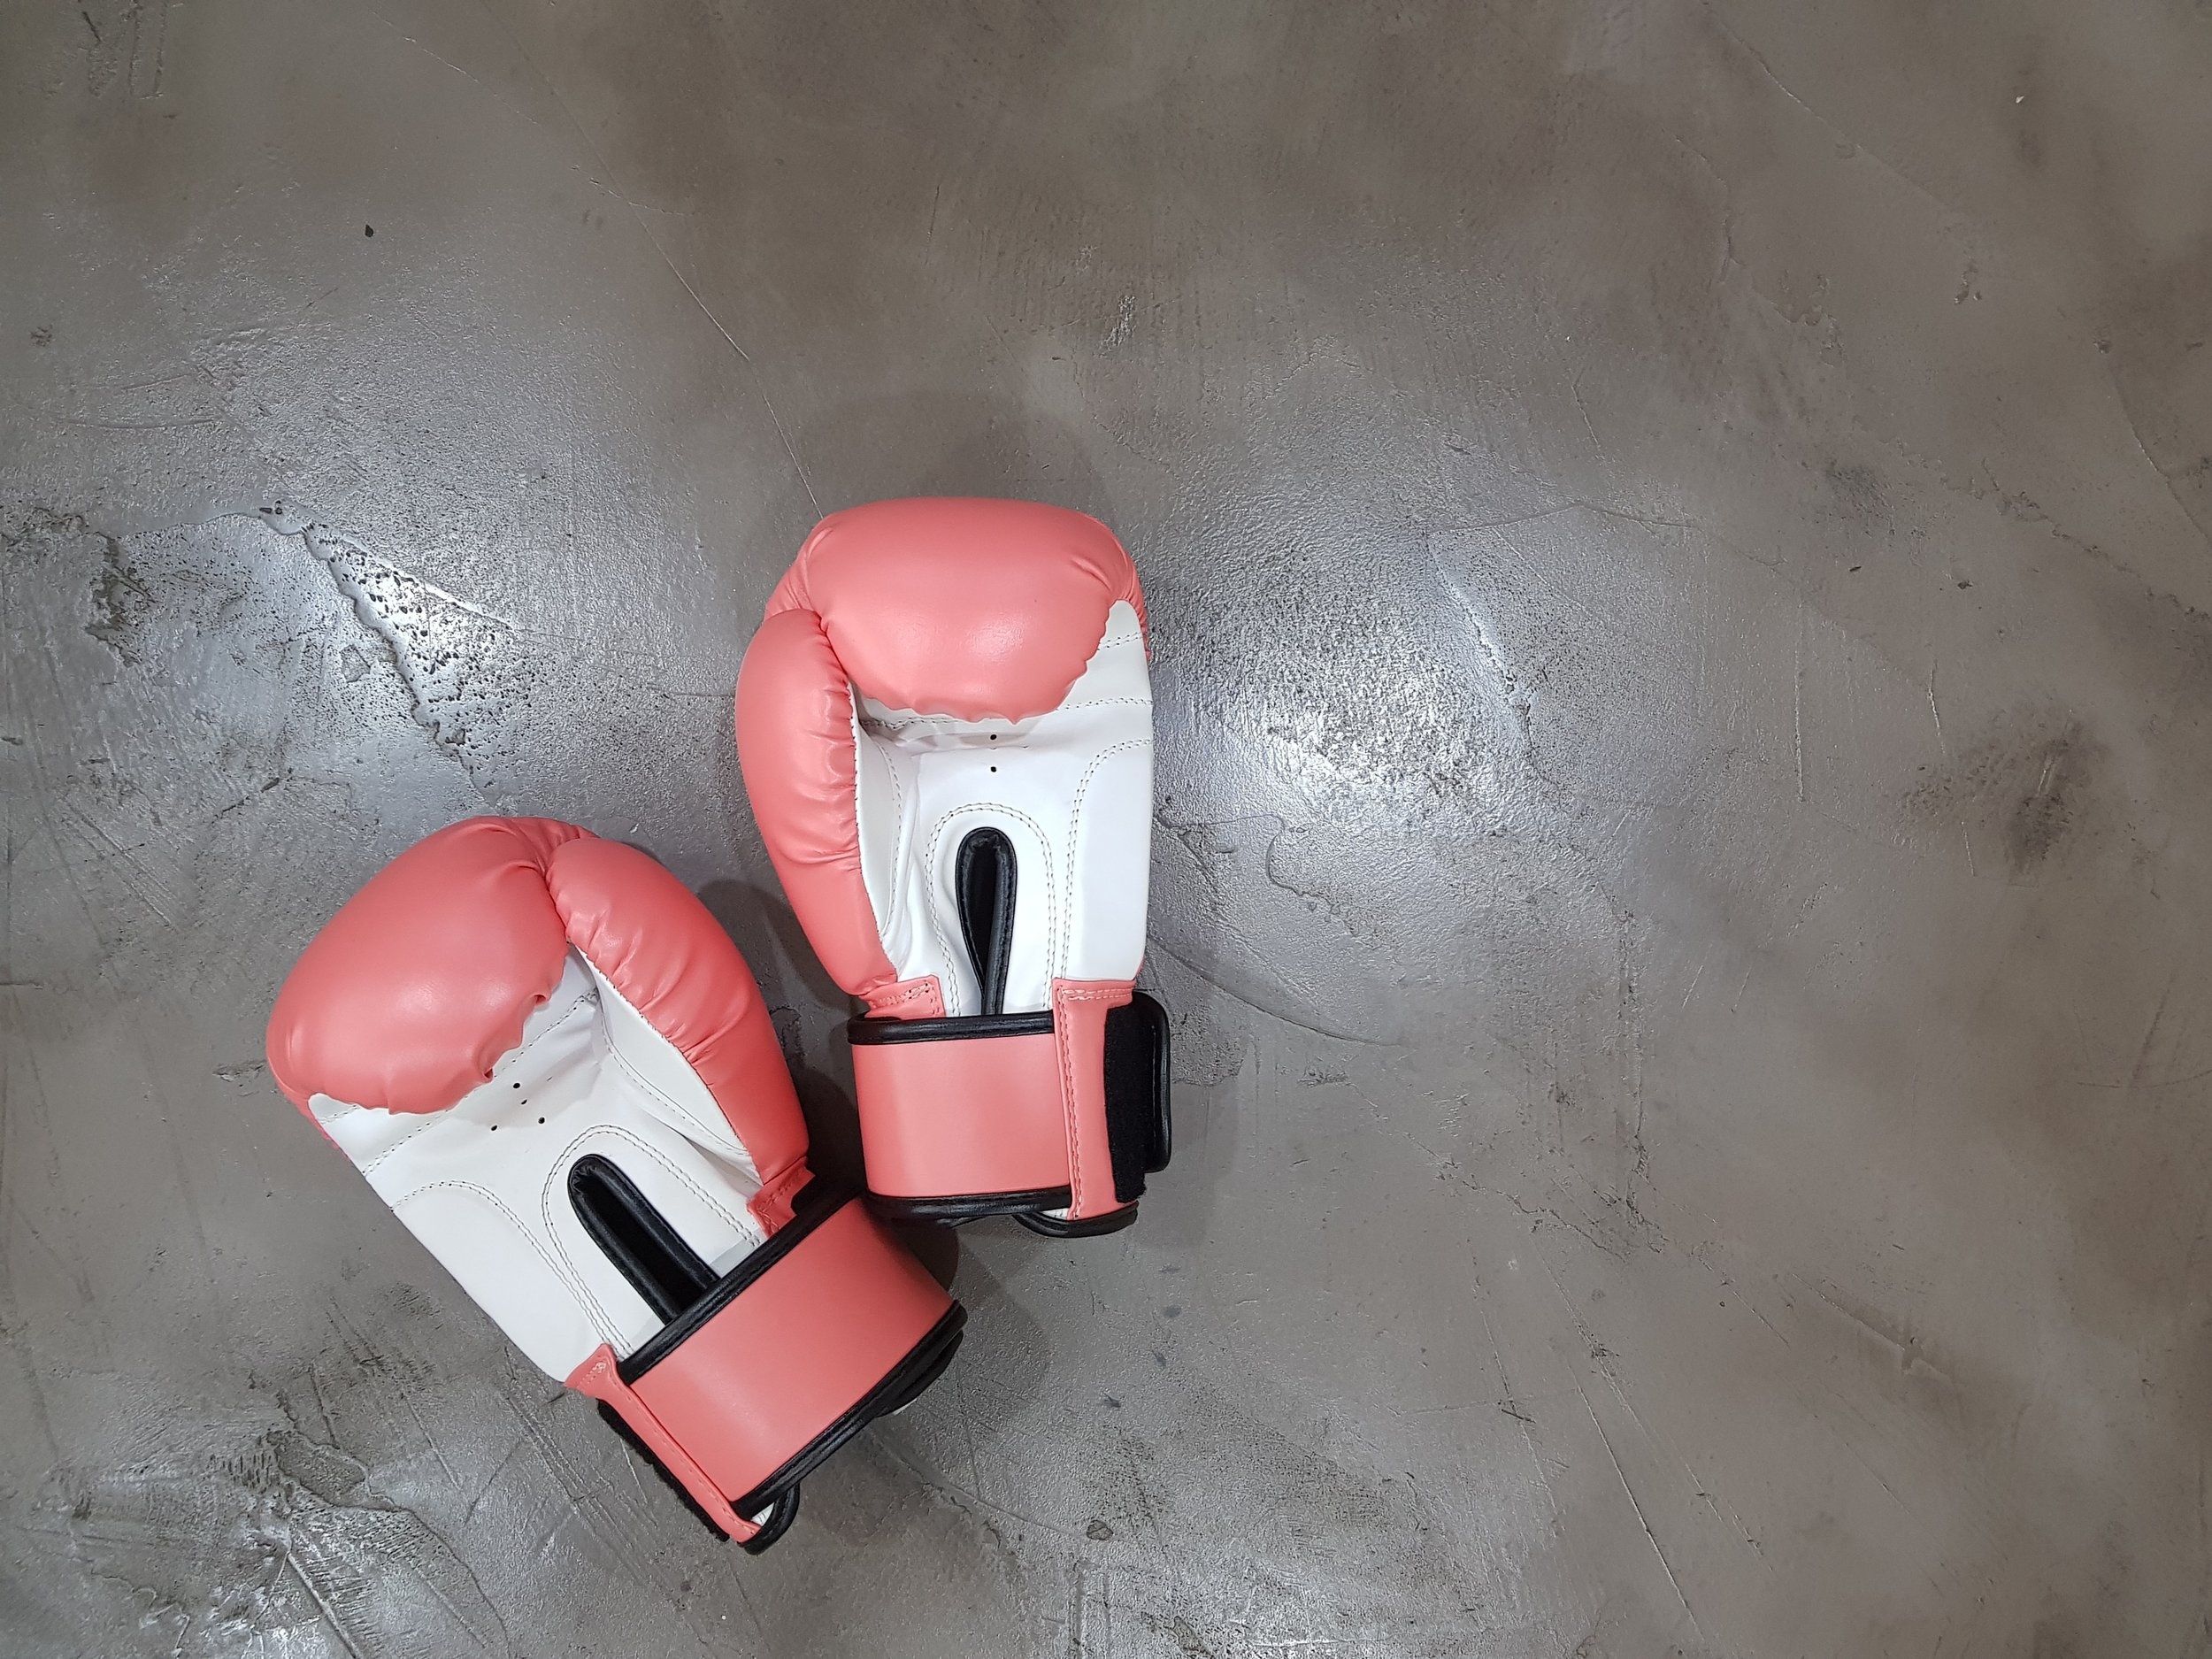 eNJOY bOXING - Small group classes combined with strength exercises for an energising workout that challenges body and mind.